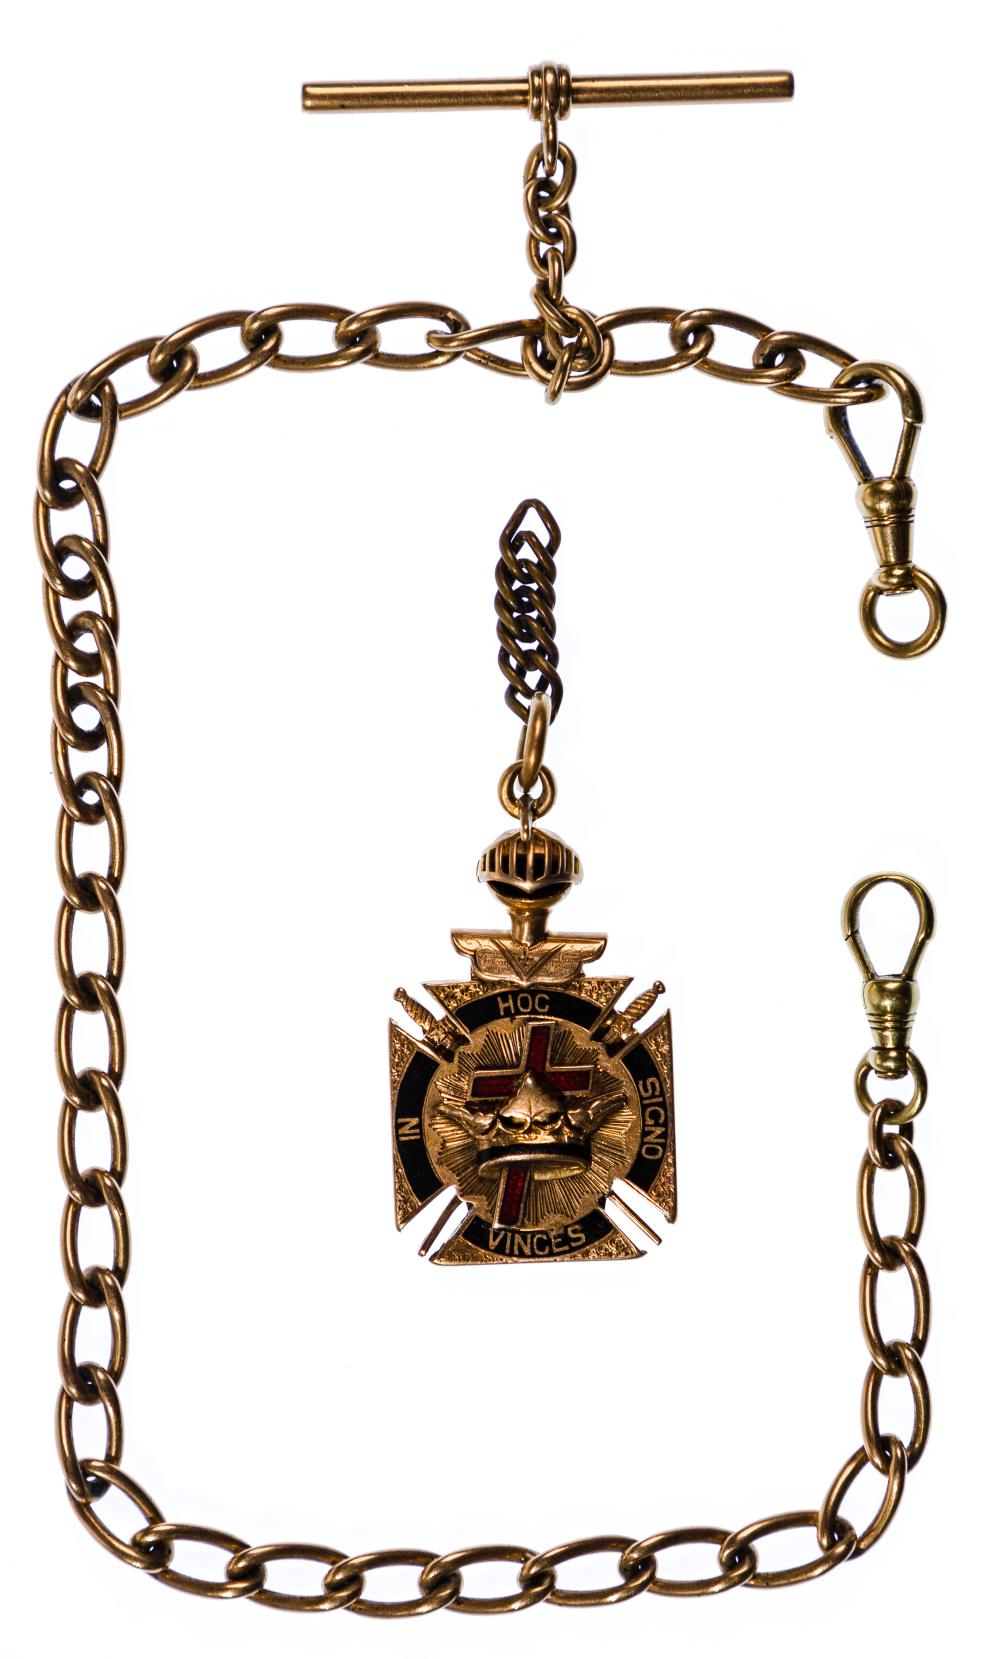 14k Yellow Gold Watch Chain and Fob